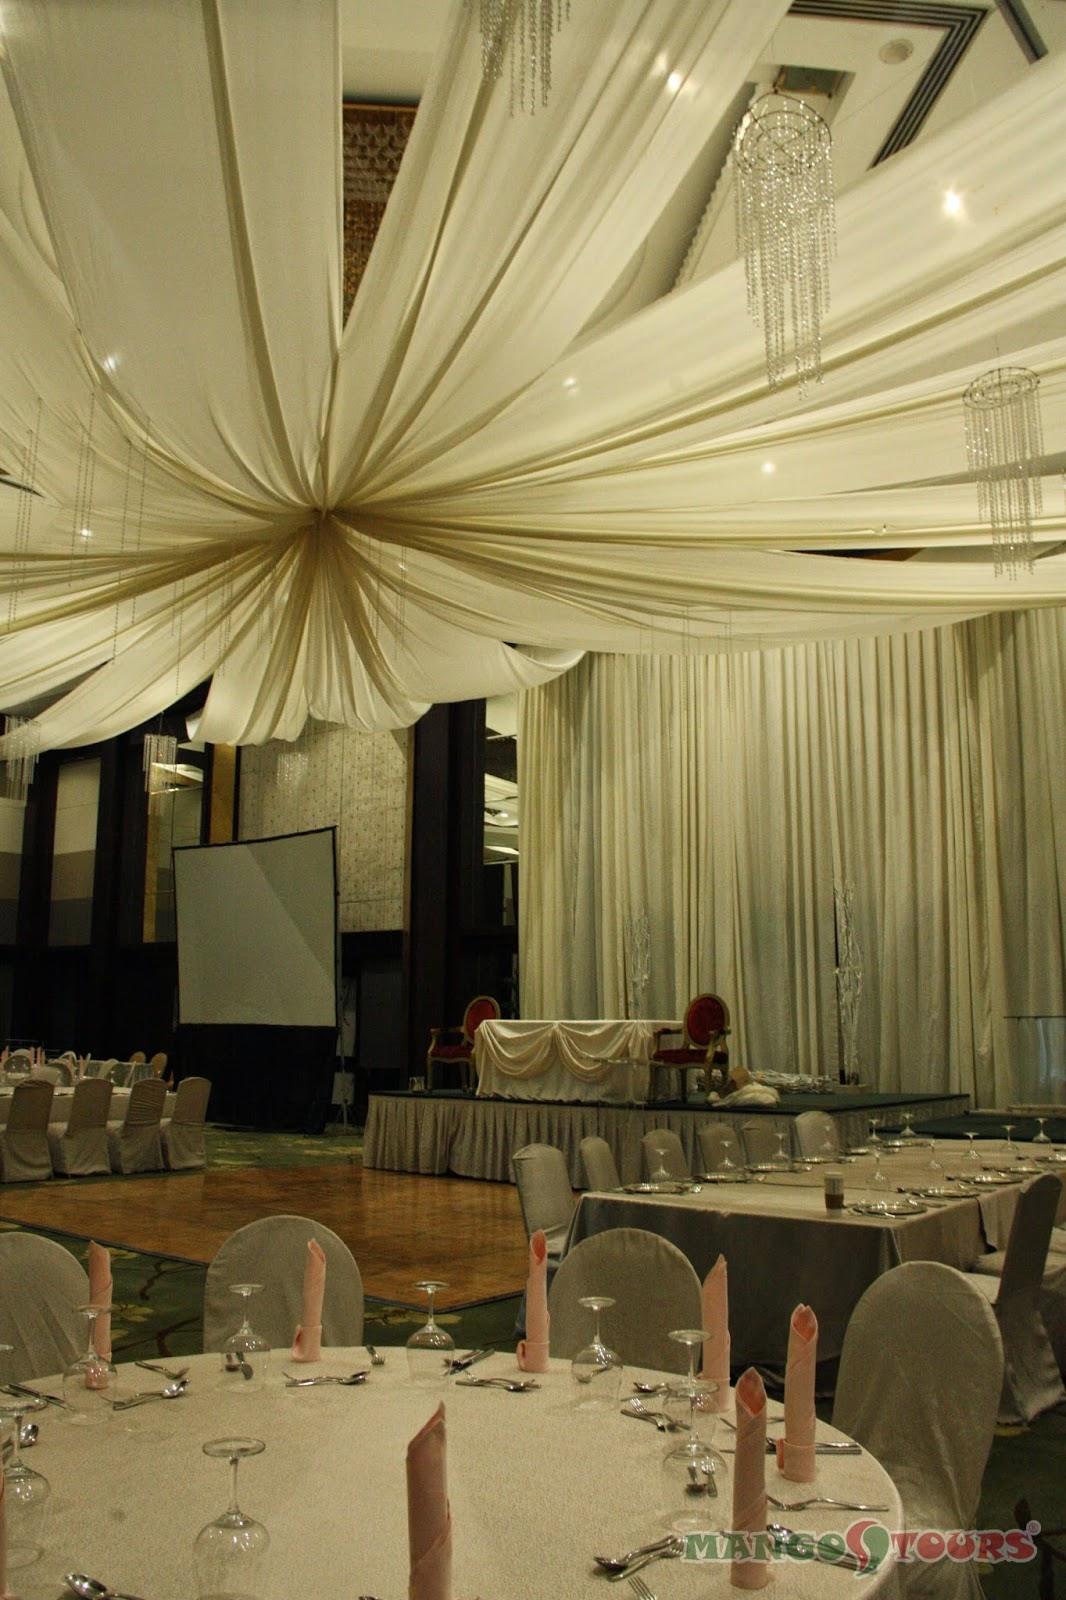 Mango Tours Diamond Hotel Philippines Ballroom